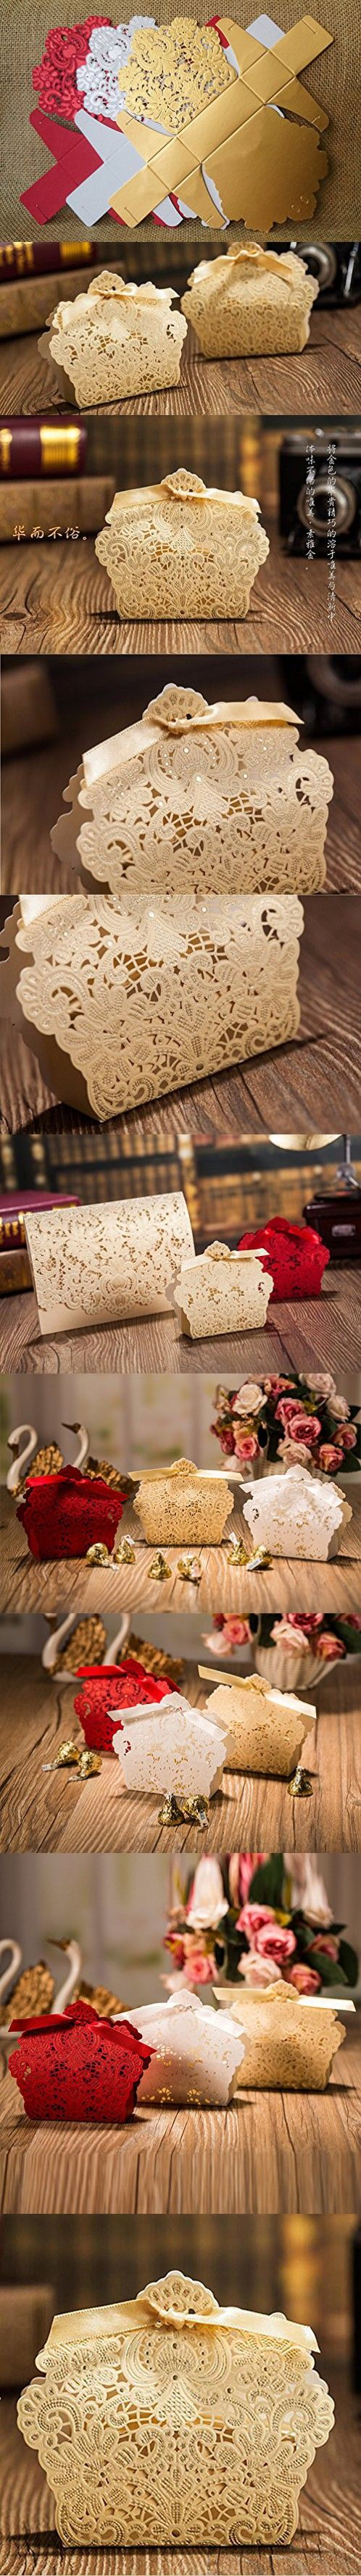 KrismileAAR Wedding Decorations Red And Champagne Color Lace Hollow Candy Box Gift For Favors Gold